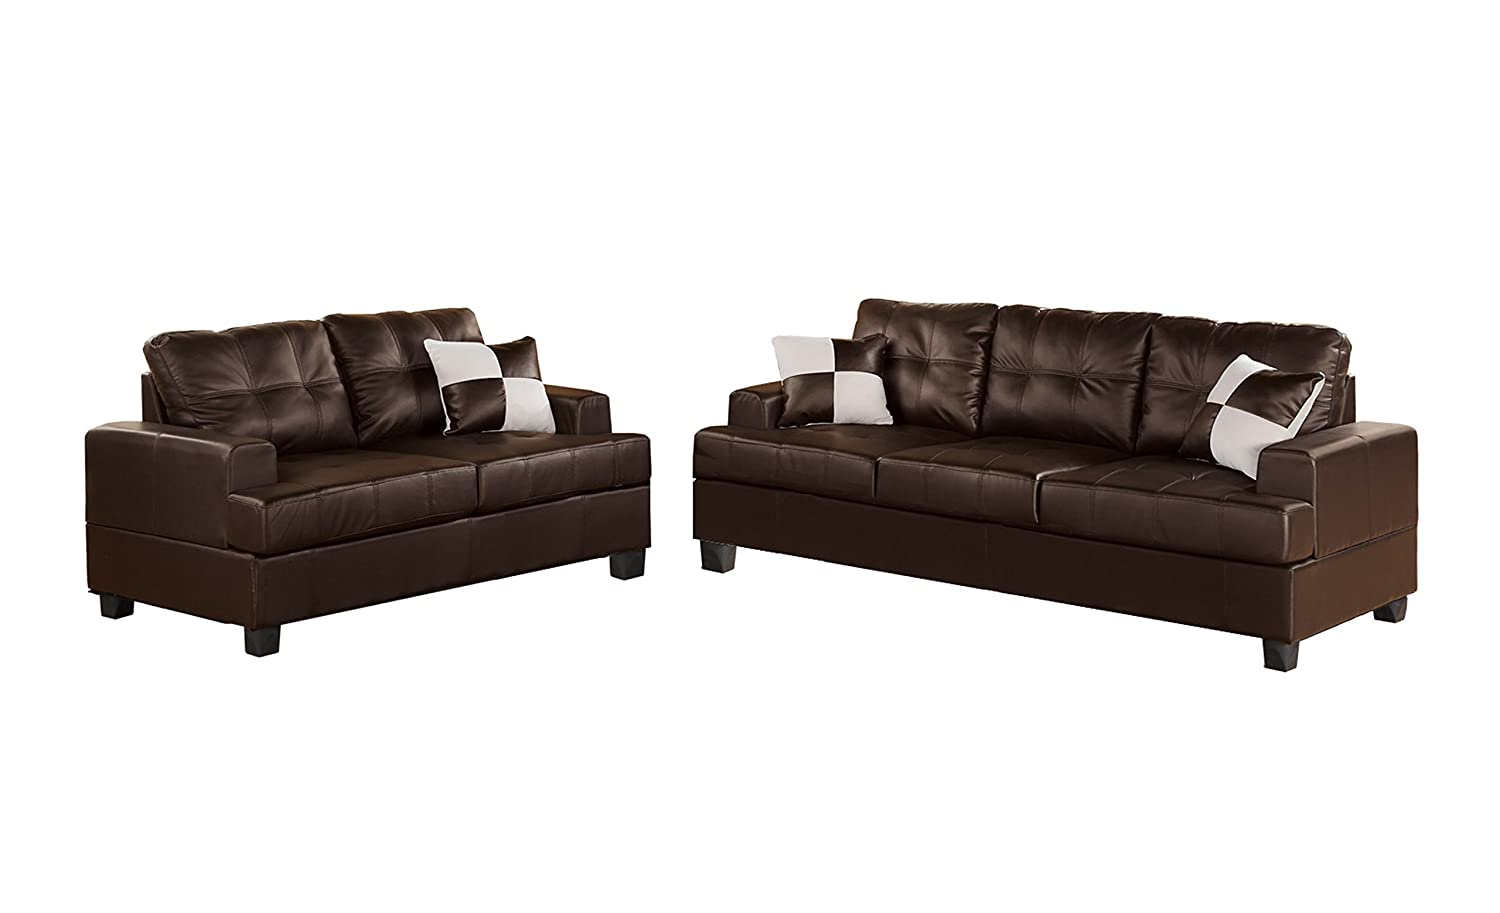 Leather 2 piece sofa loveseat set accent pillows living for Sofa and 2 chairs living room